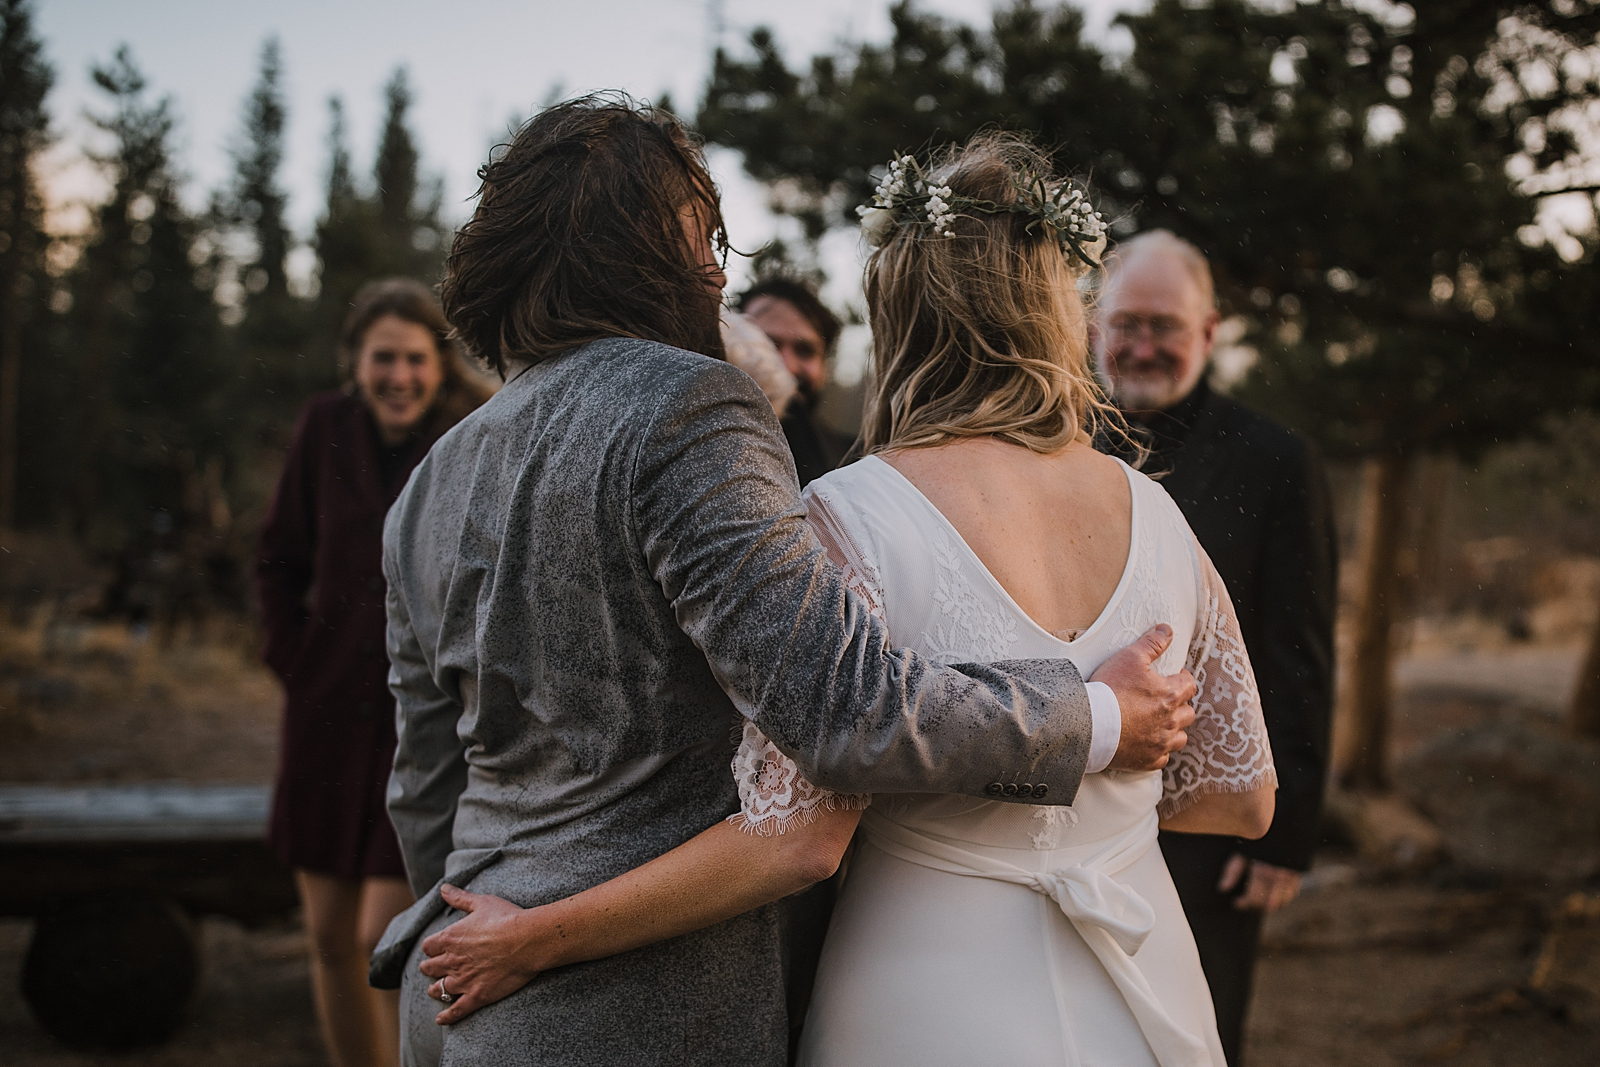 bride and groom soaked, sprague lake dock elopement, sunrise elopement, colorado elopement, sprague lake elopement, rocky mountain national park elopement, adventurous colorado hiking elopement